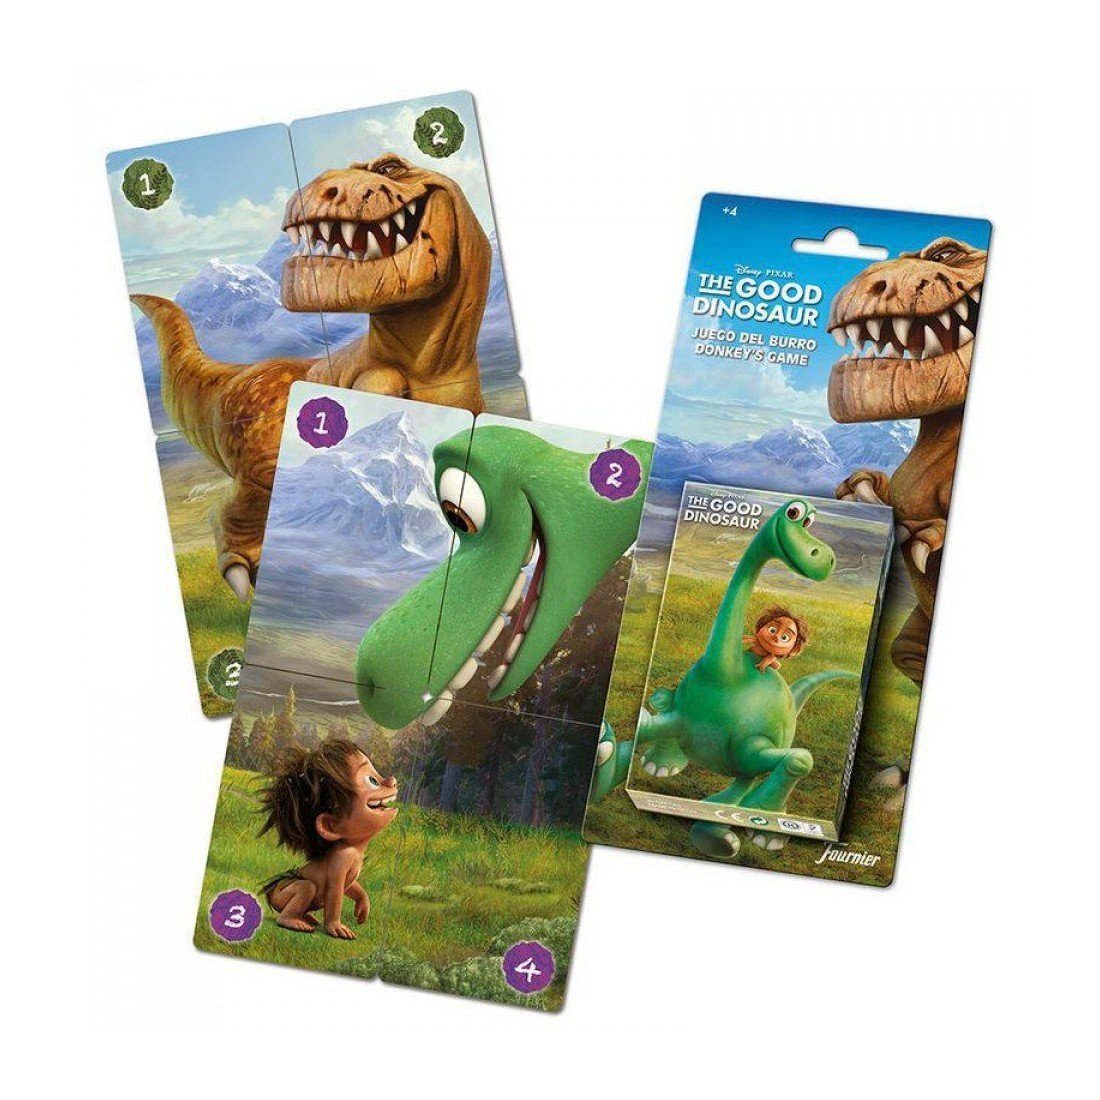 The Good Dinosaur - Baraja infantil con 40 cartas